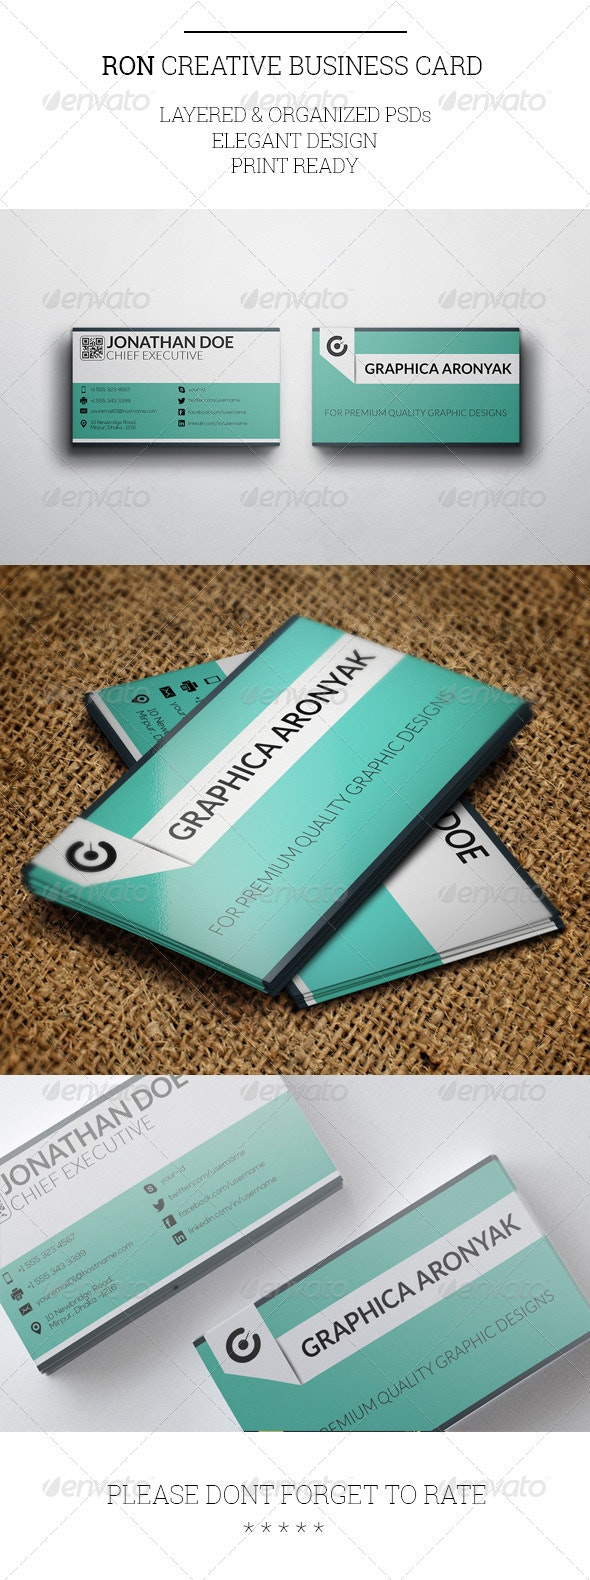 Ron Creative Business Card Template - Creative Business Cards